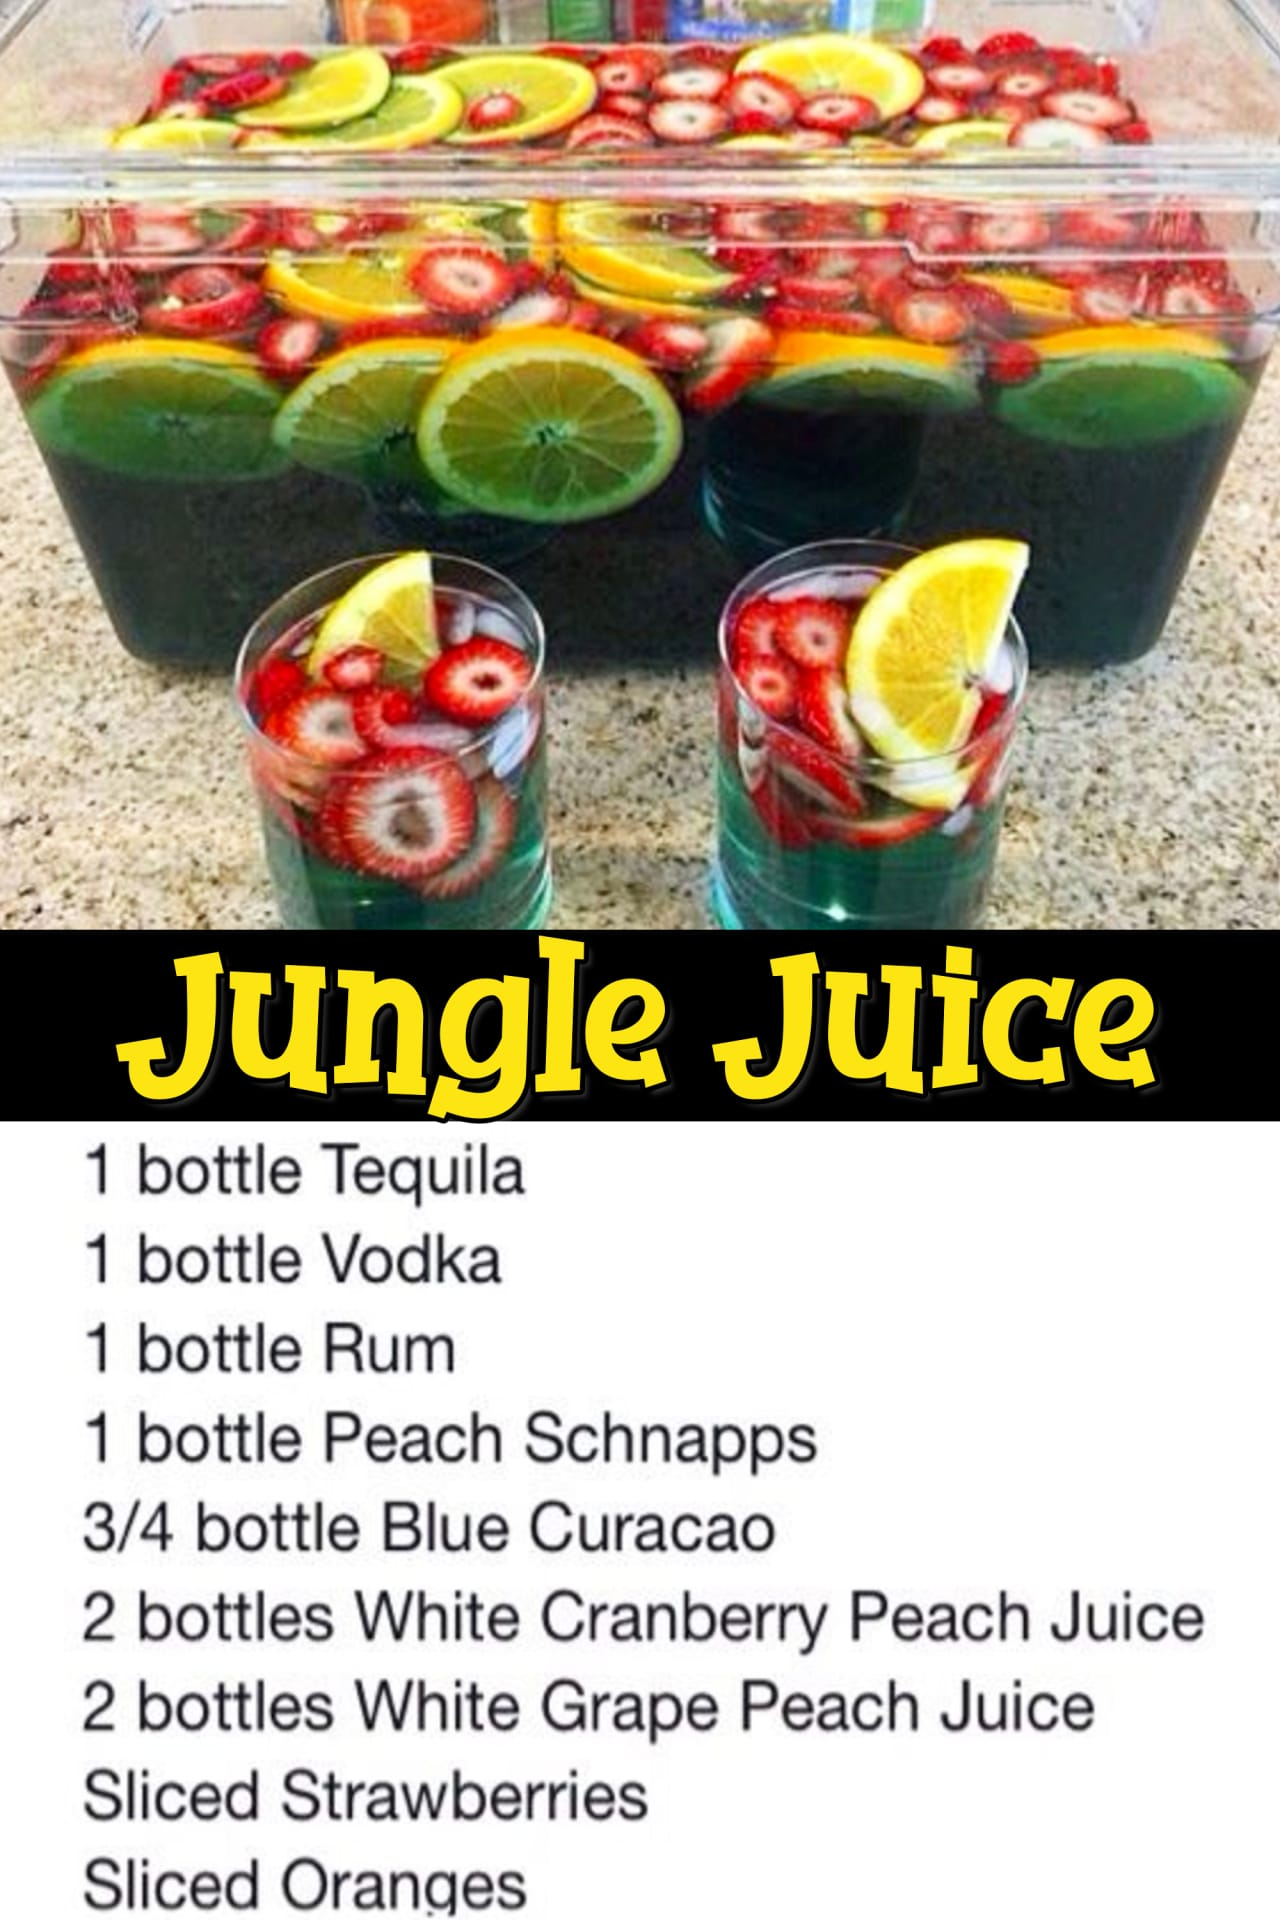 Jungle Juice Punch Recipe - Easy Punch Recipes for a Crowd and Easy Party Drinks Ideas - Cranberry Vodka Punch, Pineapple Orange Juice Alcoholic Drinks, Punch for 50 and Simple Punch Recipes for a Crowd, Party, Brunch, Cookout or Bridal Shower - non-alcoholic punch recipes and simple alcoholic punch recipes, non-alcoholic holiday punch, easy fruit punch recipes, easy punch recipes with sprite and pineapple juice, jungle juice recipe with fruit